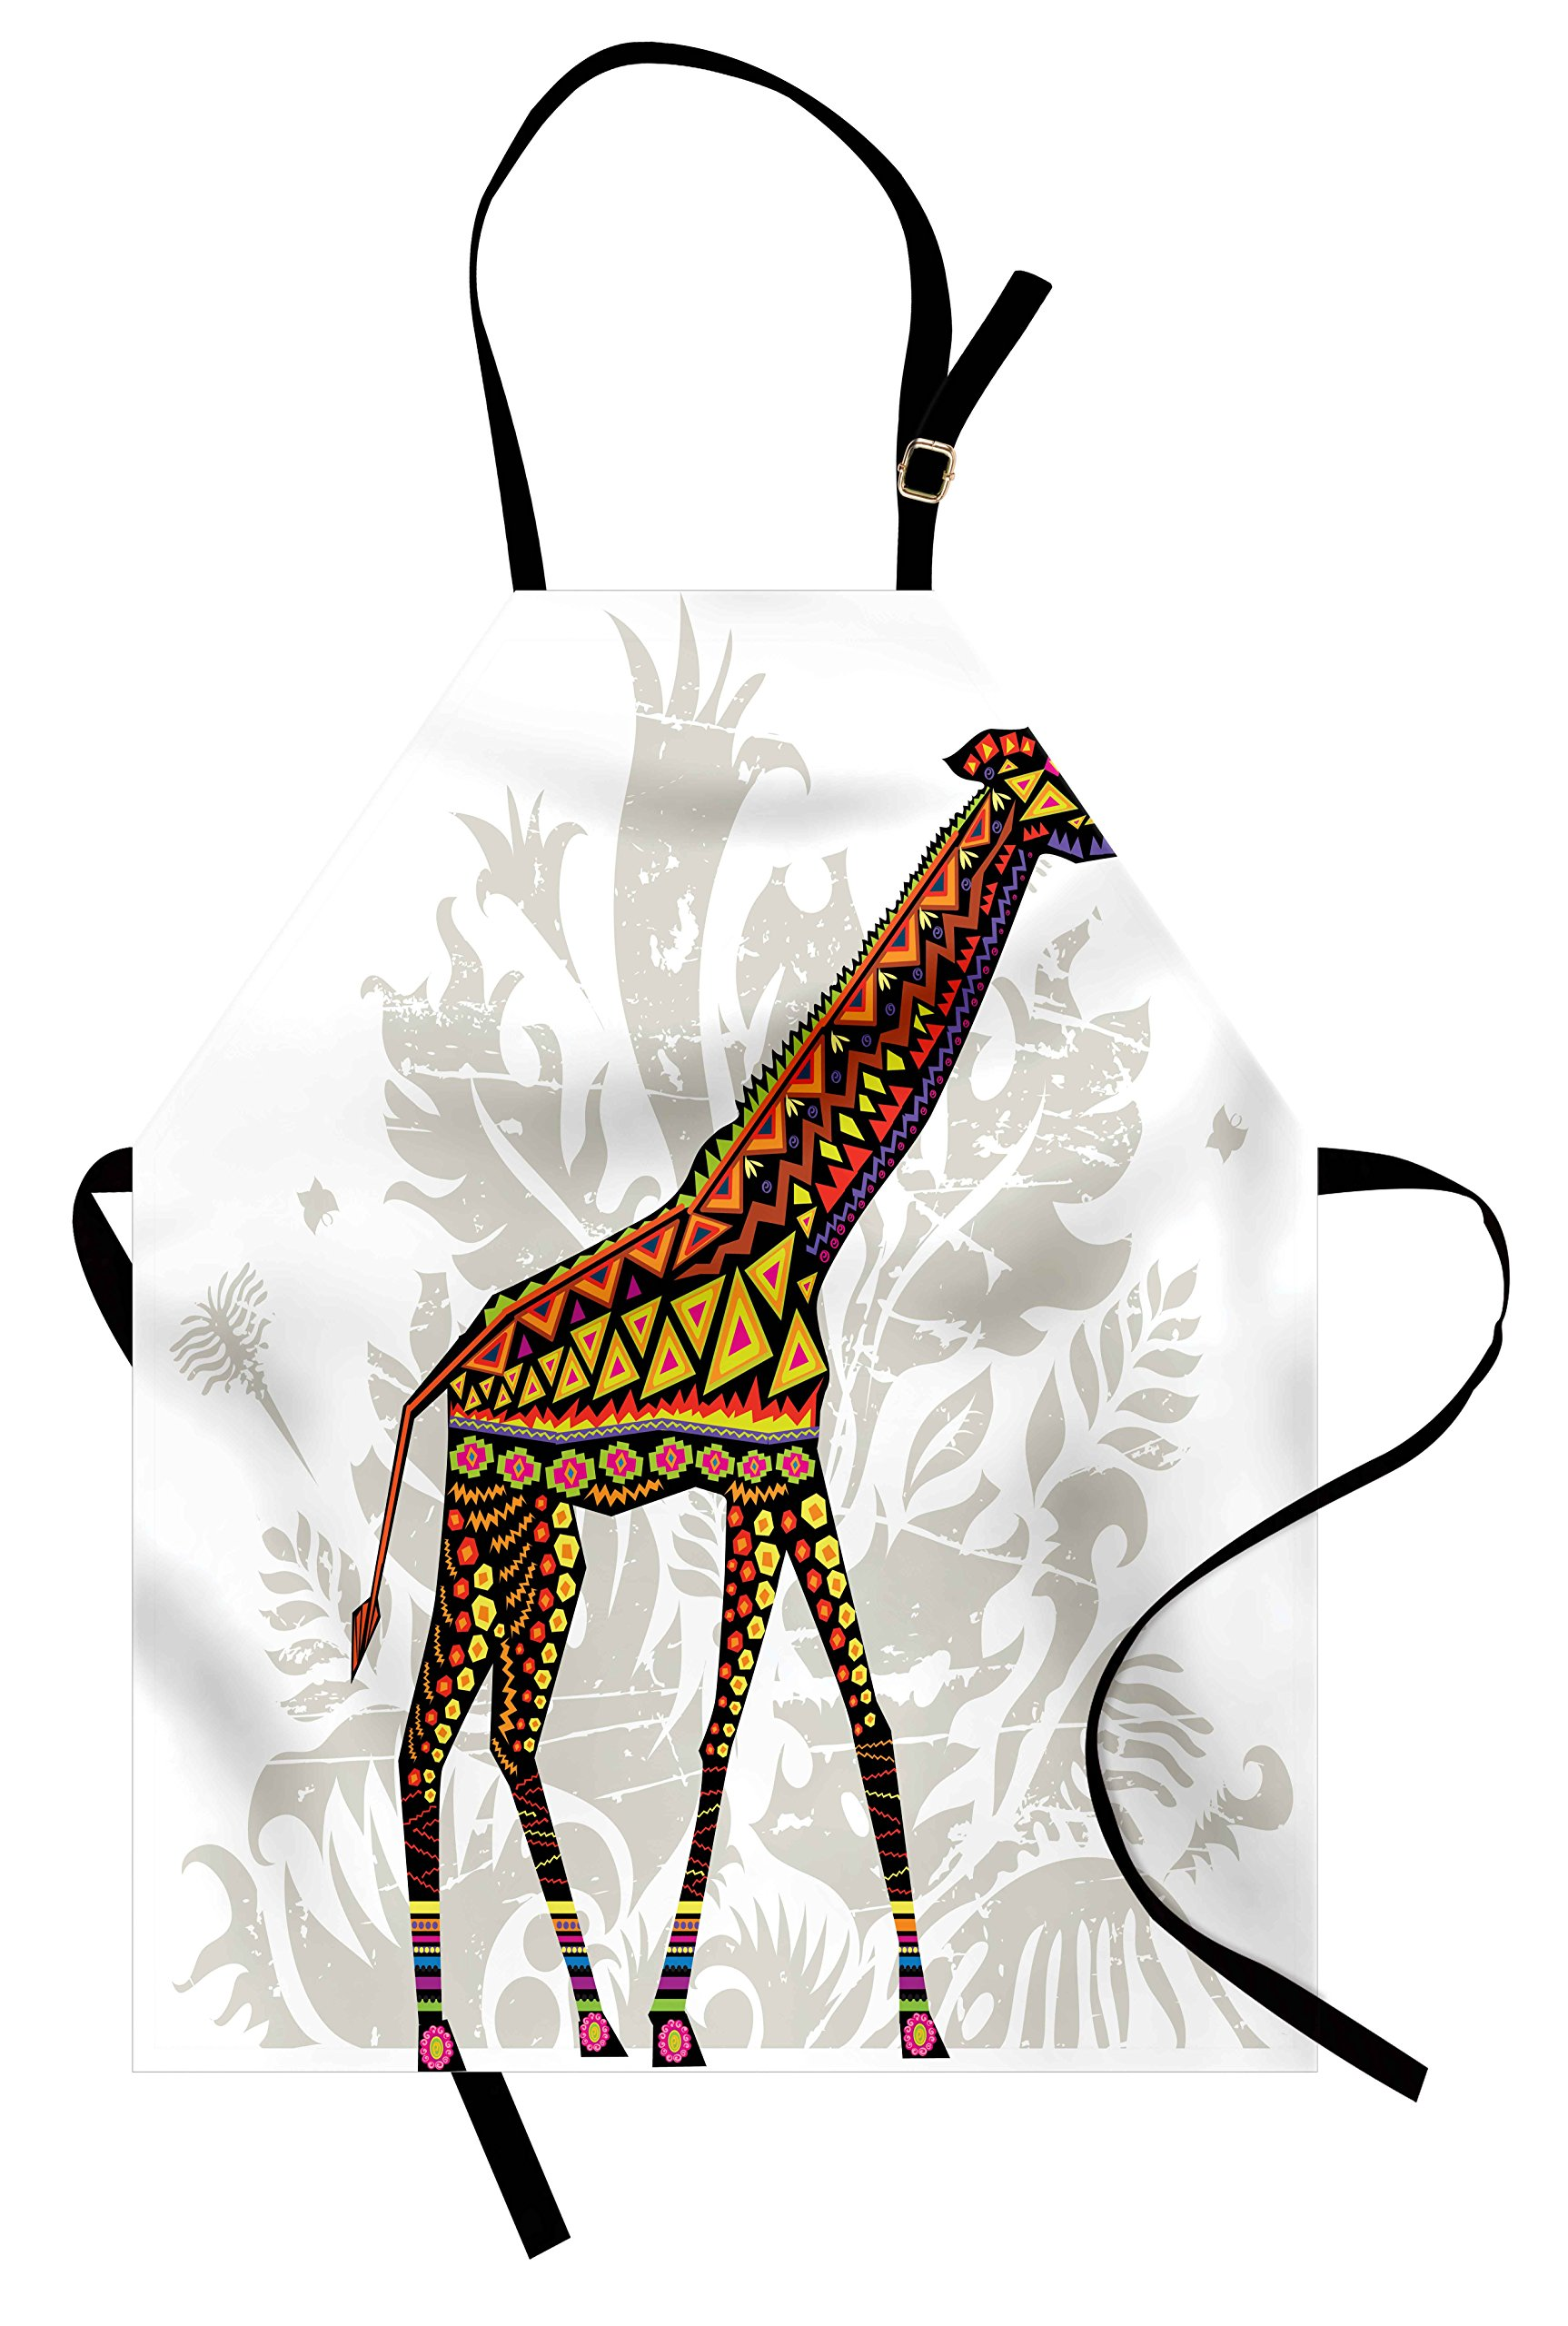 Ambesonne Batik Apron, African Savannah Animal Giraffe with Ethnic Ornament Patterns on Body Creature Print, Unisex Kitchen Bib Apron with Adjustable Neck for Cooking Baking Gardening, Multicolor by Ambesonne